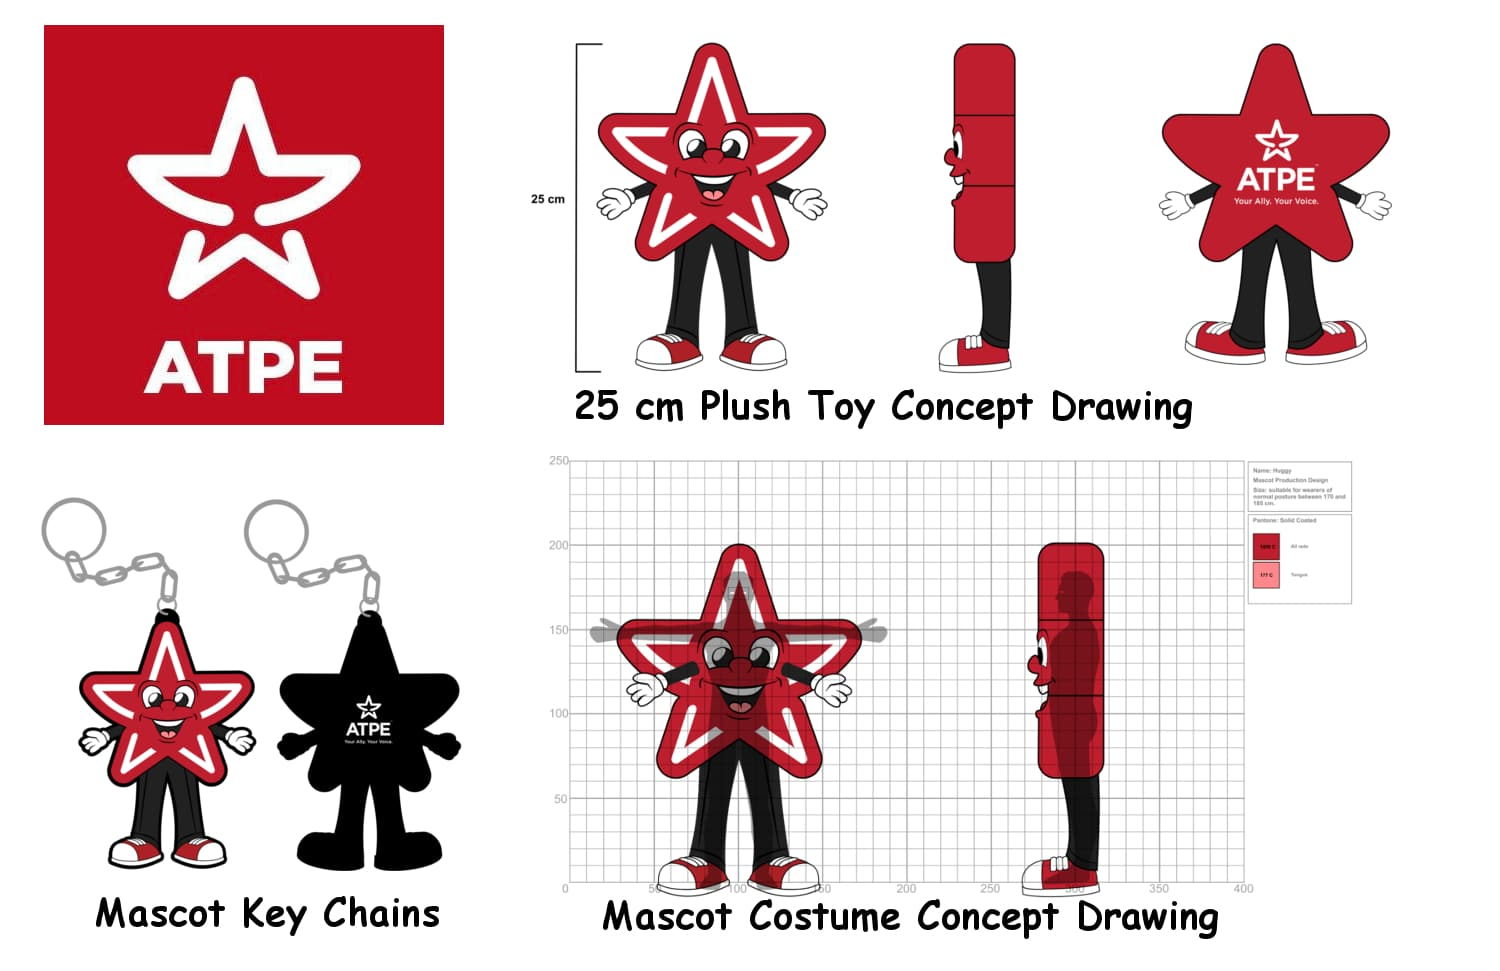 ATPE Mascot Costume Key chains and plush toys Concept Drawing -Promo Bears-